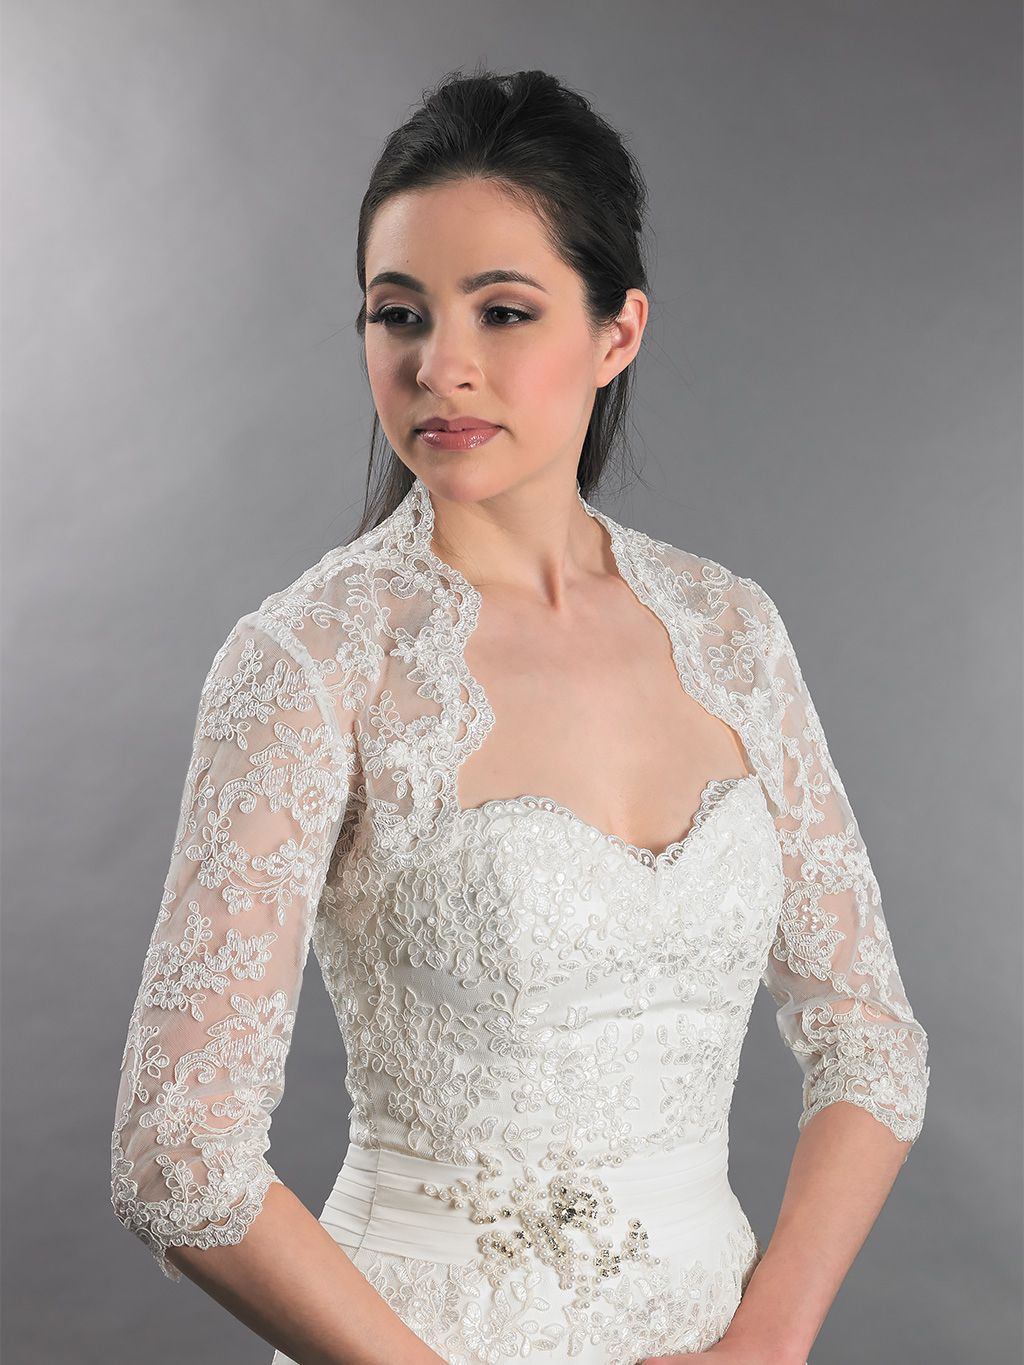 Lace Shrugs for Wedding Dresses - Cute Dresses for A Wedding Check ...